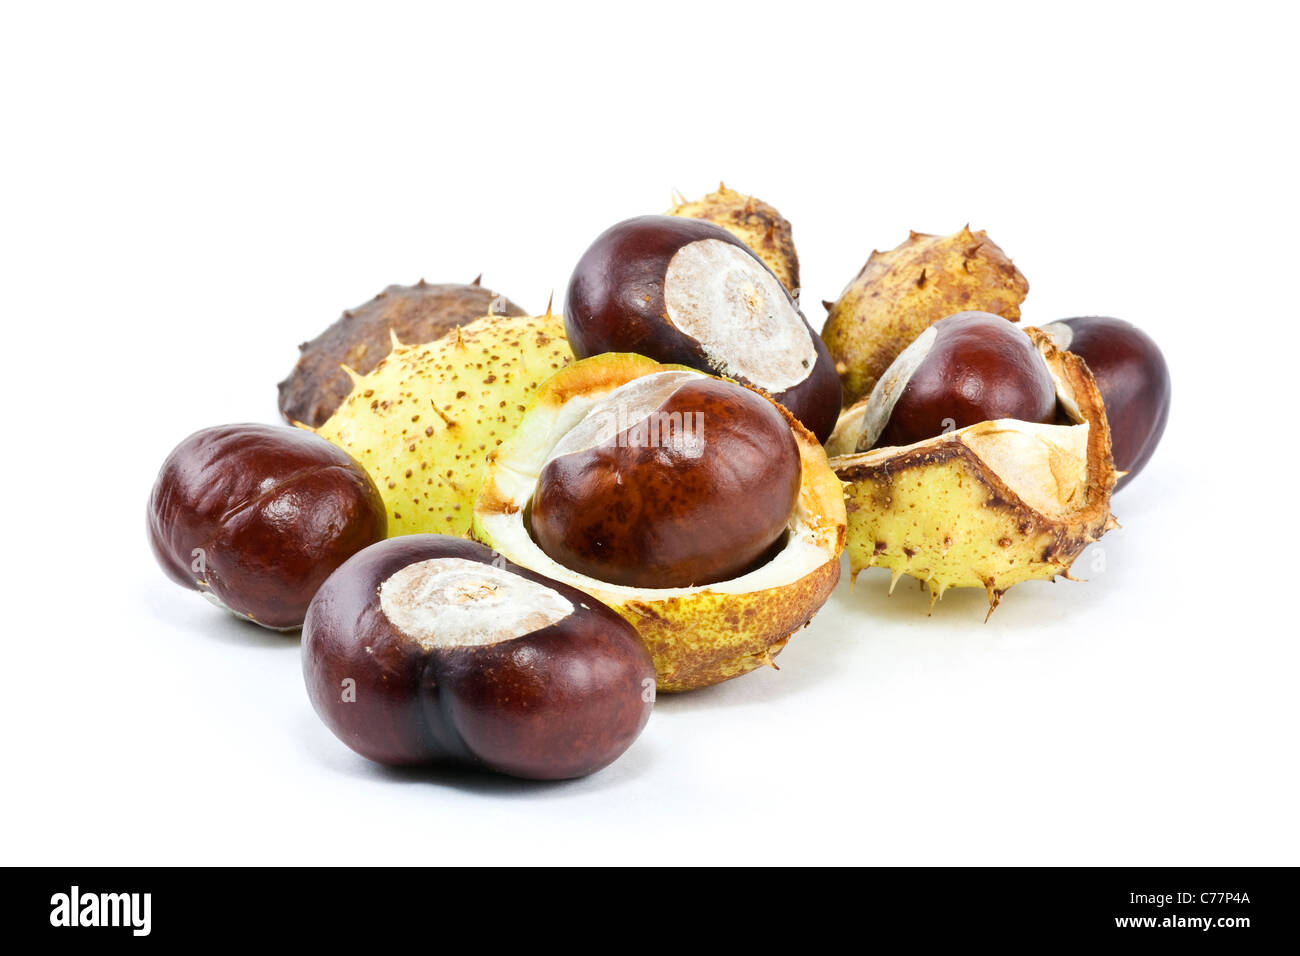 conkers and conker leaves and cases in the studio - Stock Image